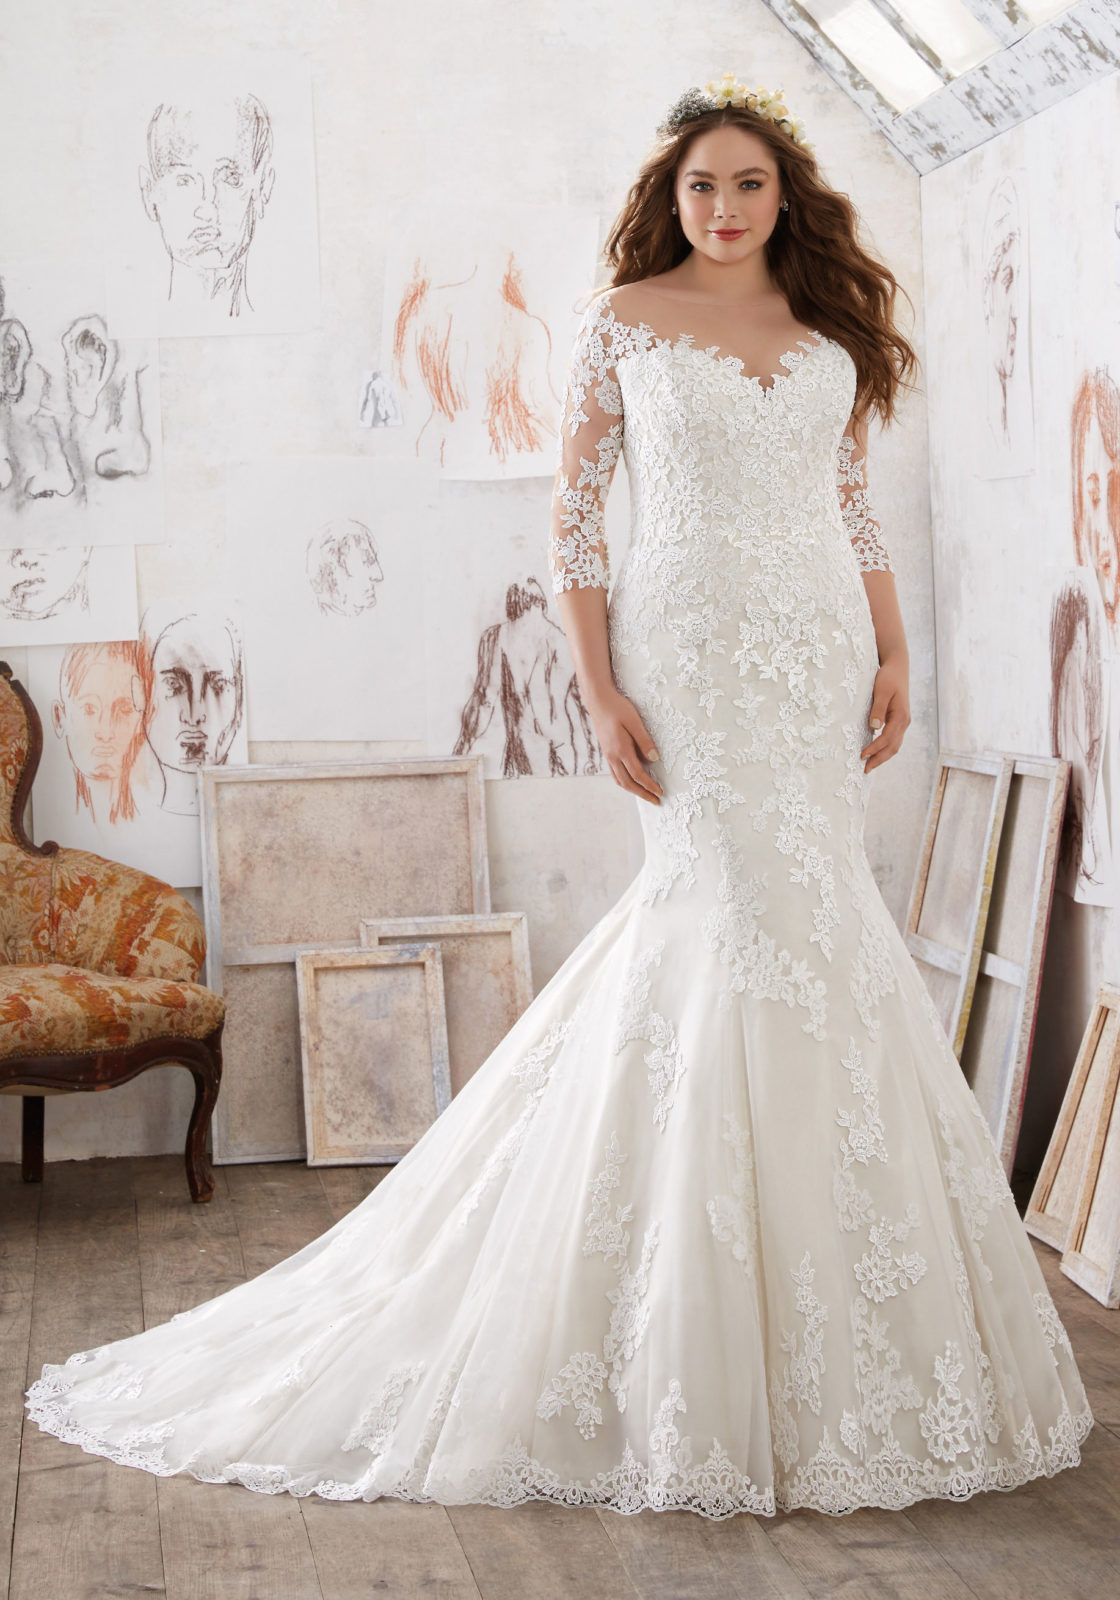 Beautiful Mia Julietta Mori Lee Designer Wedding Dresses and Bridal Gowns by Morilee This Plus Size Off the Shoulder Illusion Wedding Gown Features Exquisite Lace